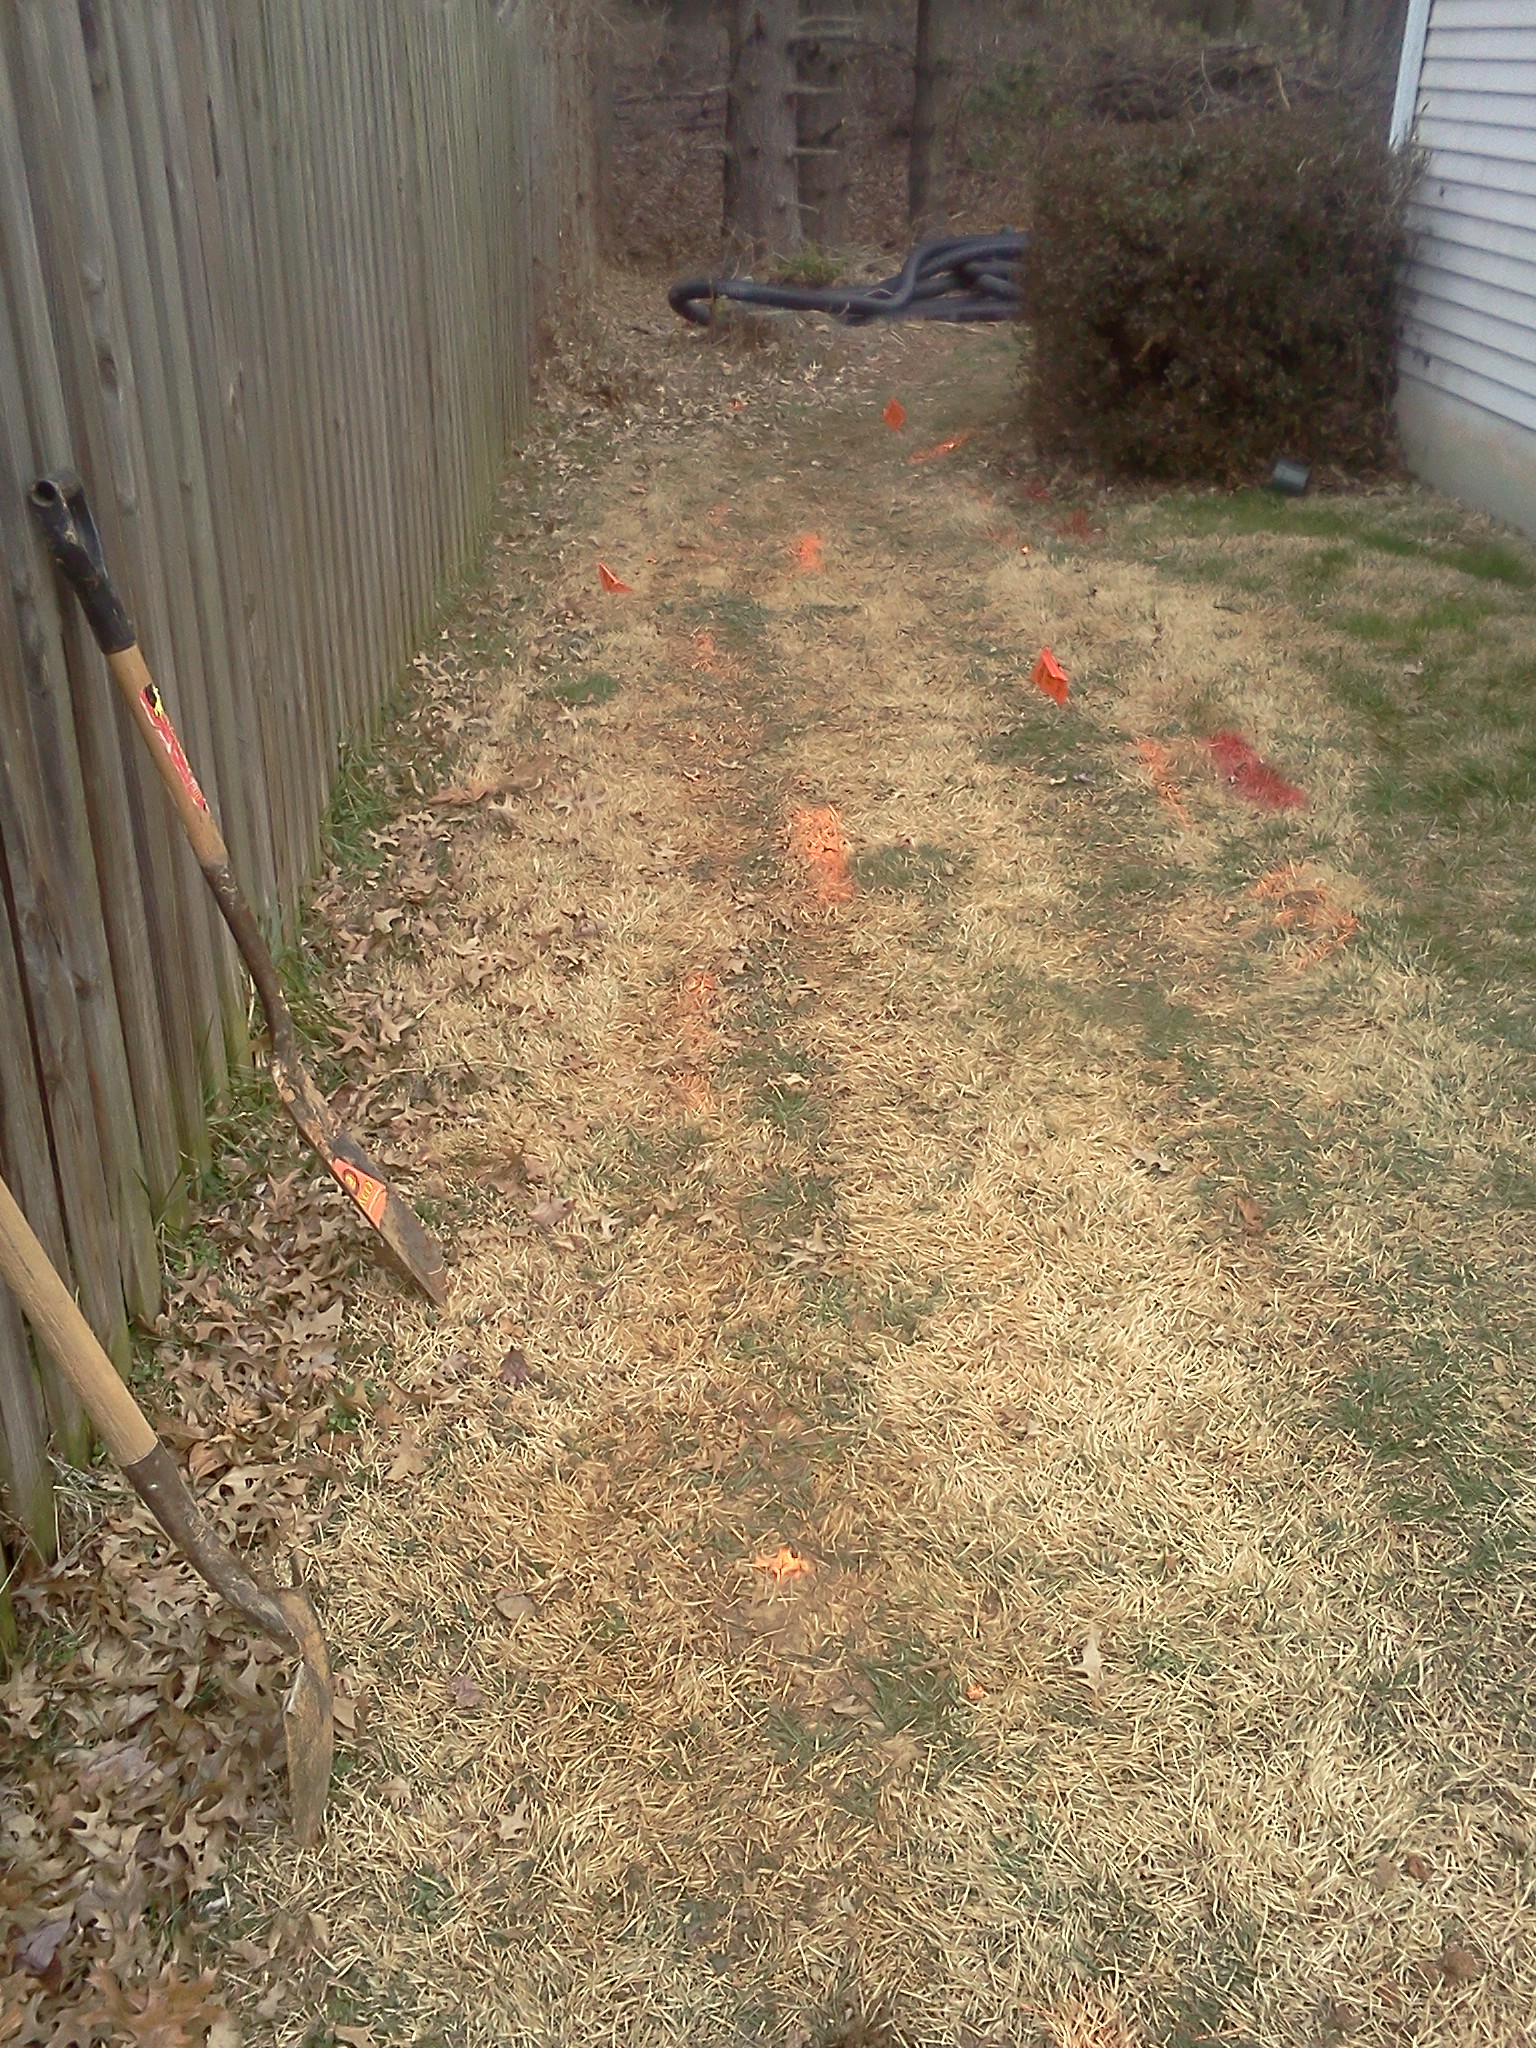 French Drain Contractor Northern Virginia Fairfax Yard Drainage Cost Design Diagram How To A Or Lawn Drains